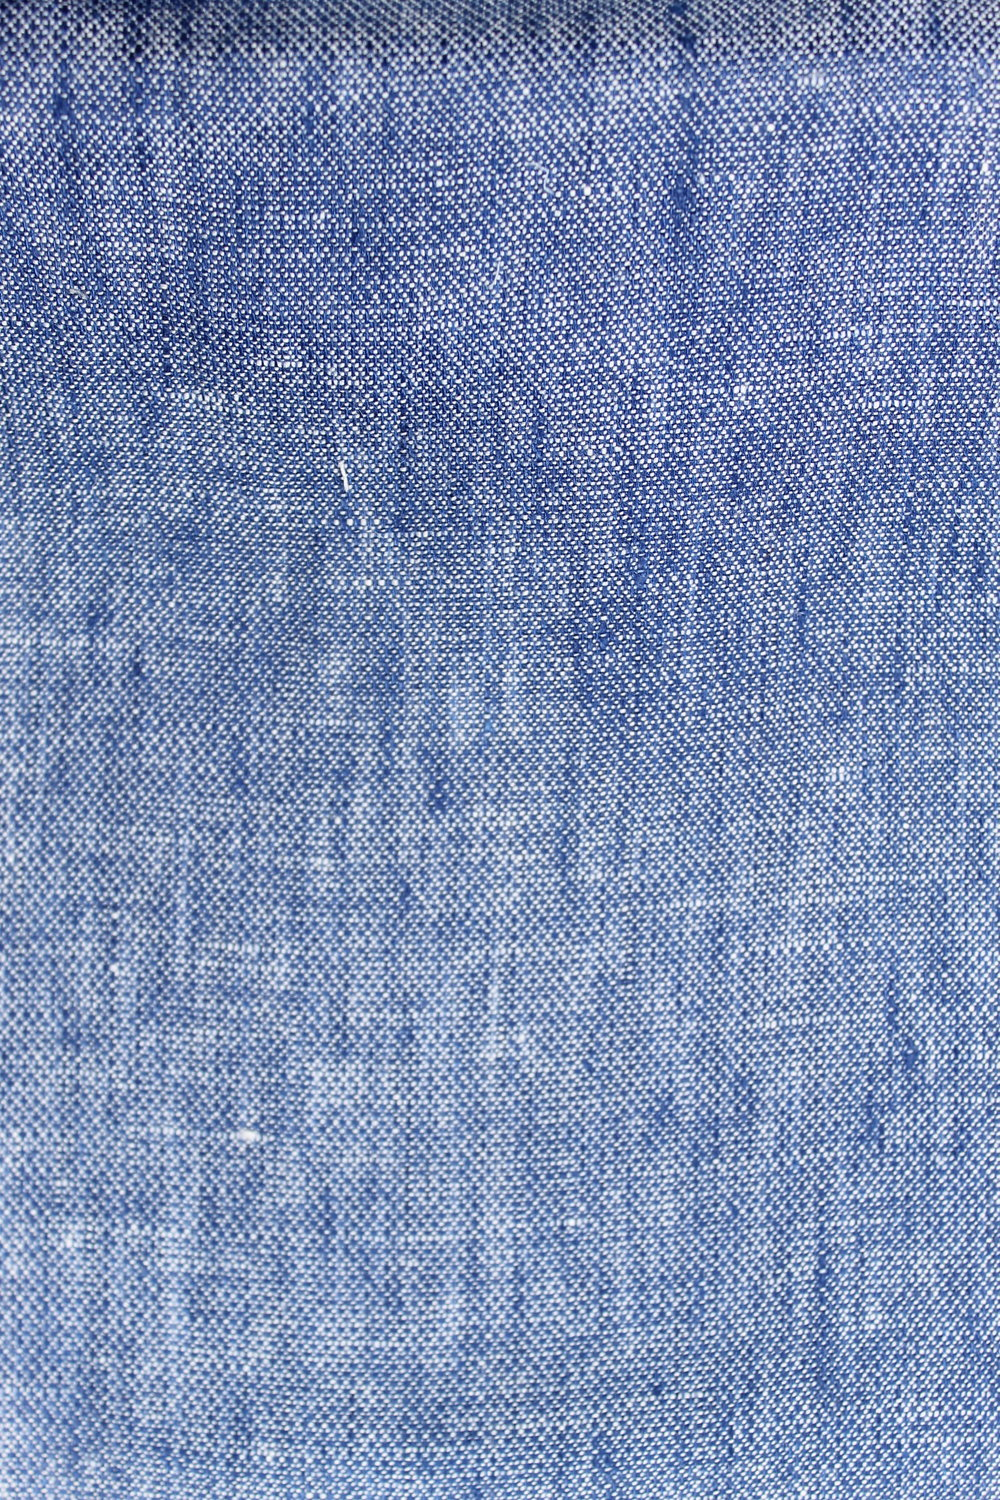 L132 Blue Cotton Textured.JPG